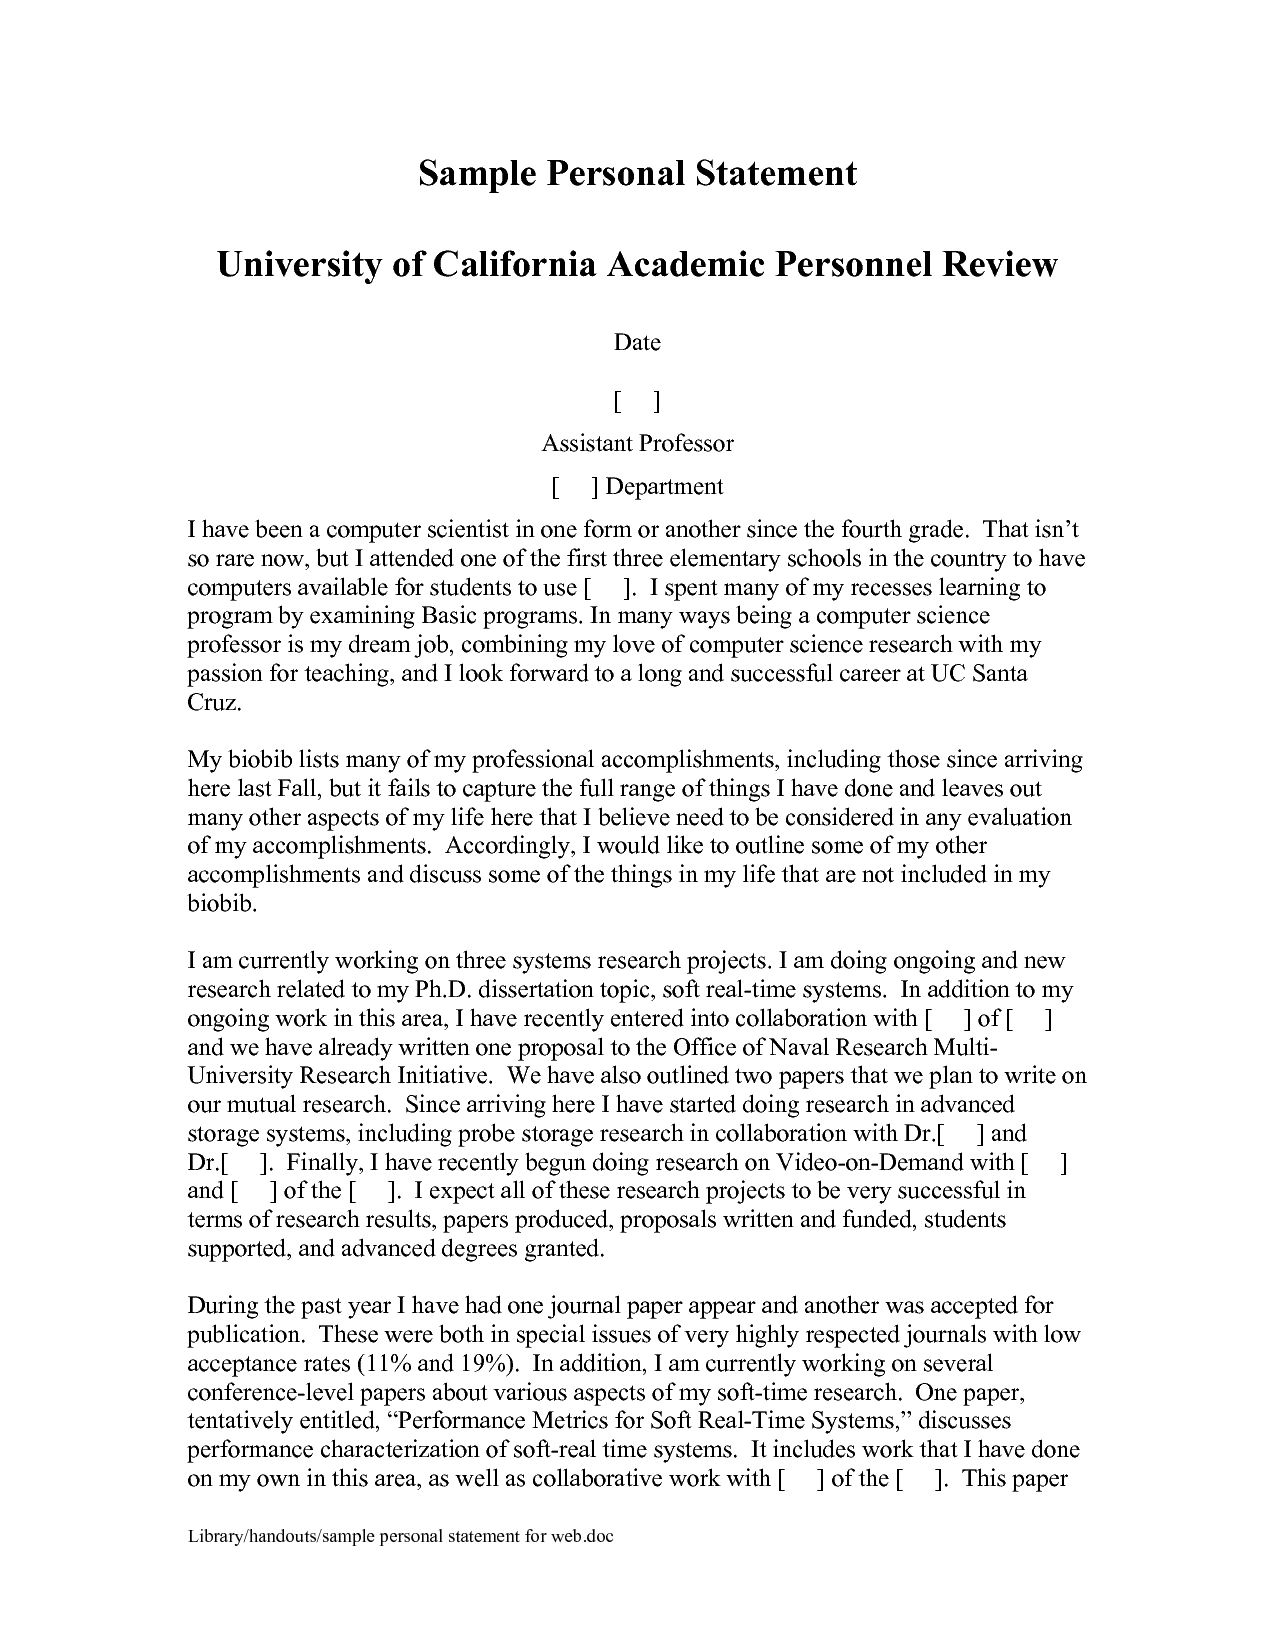 Essay On Healthcare  General Essay Topics In English also Bullying Essay Thesis  Graduate Personal Statement Template Agzkmfek Diversity  Narrative Essay Examples For High School